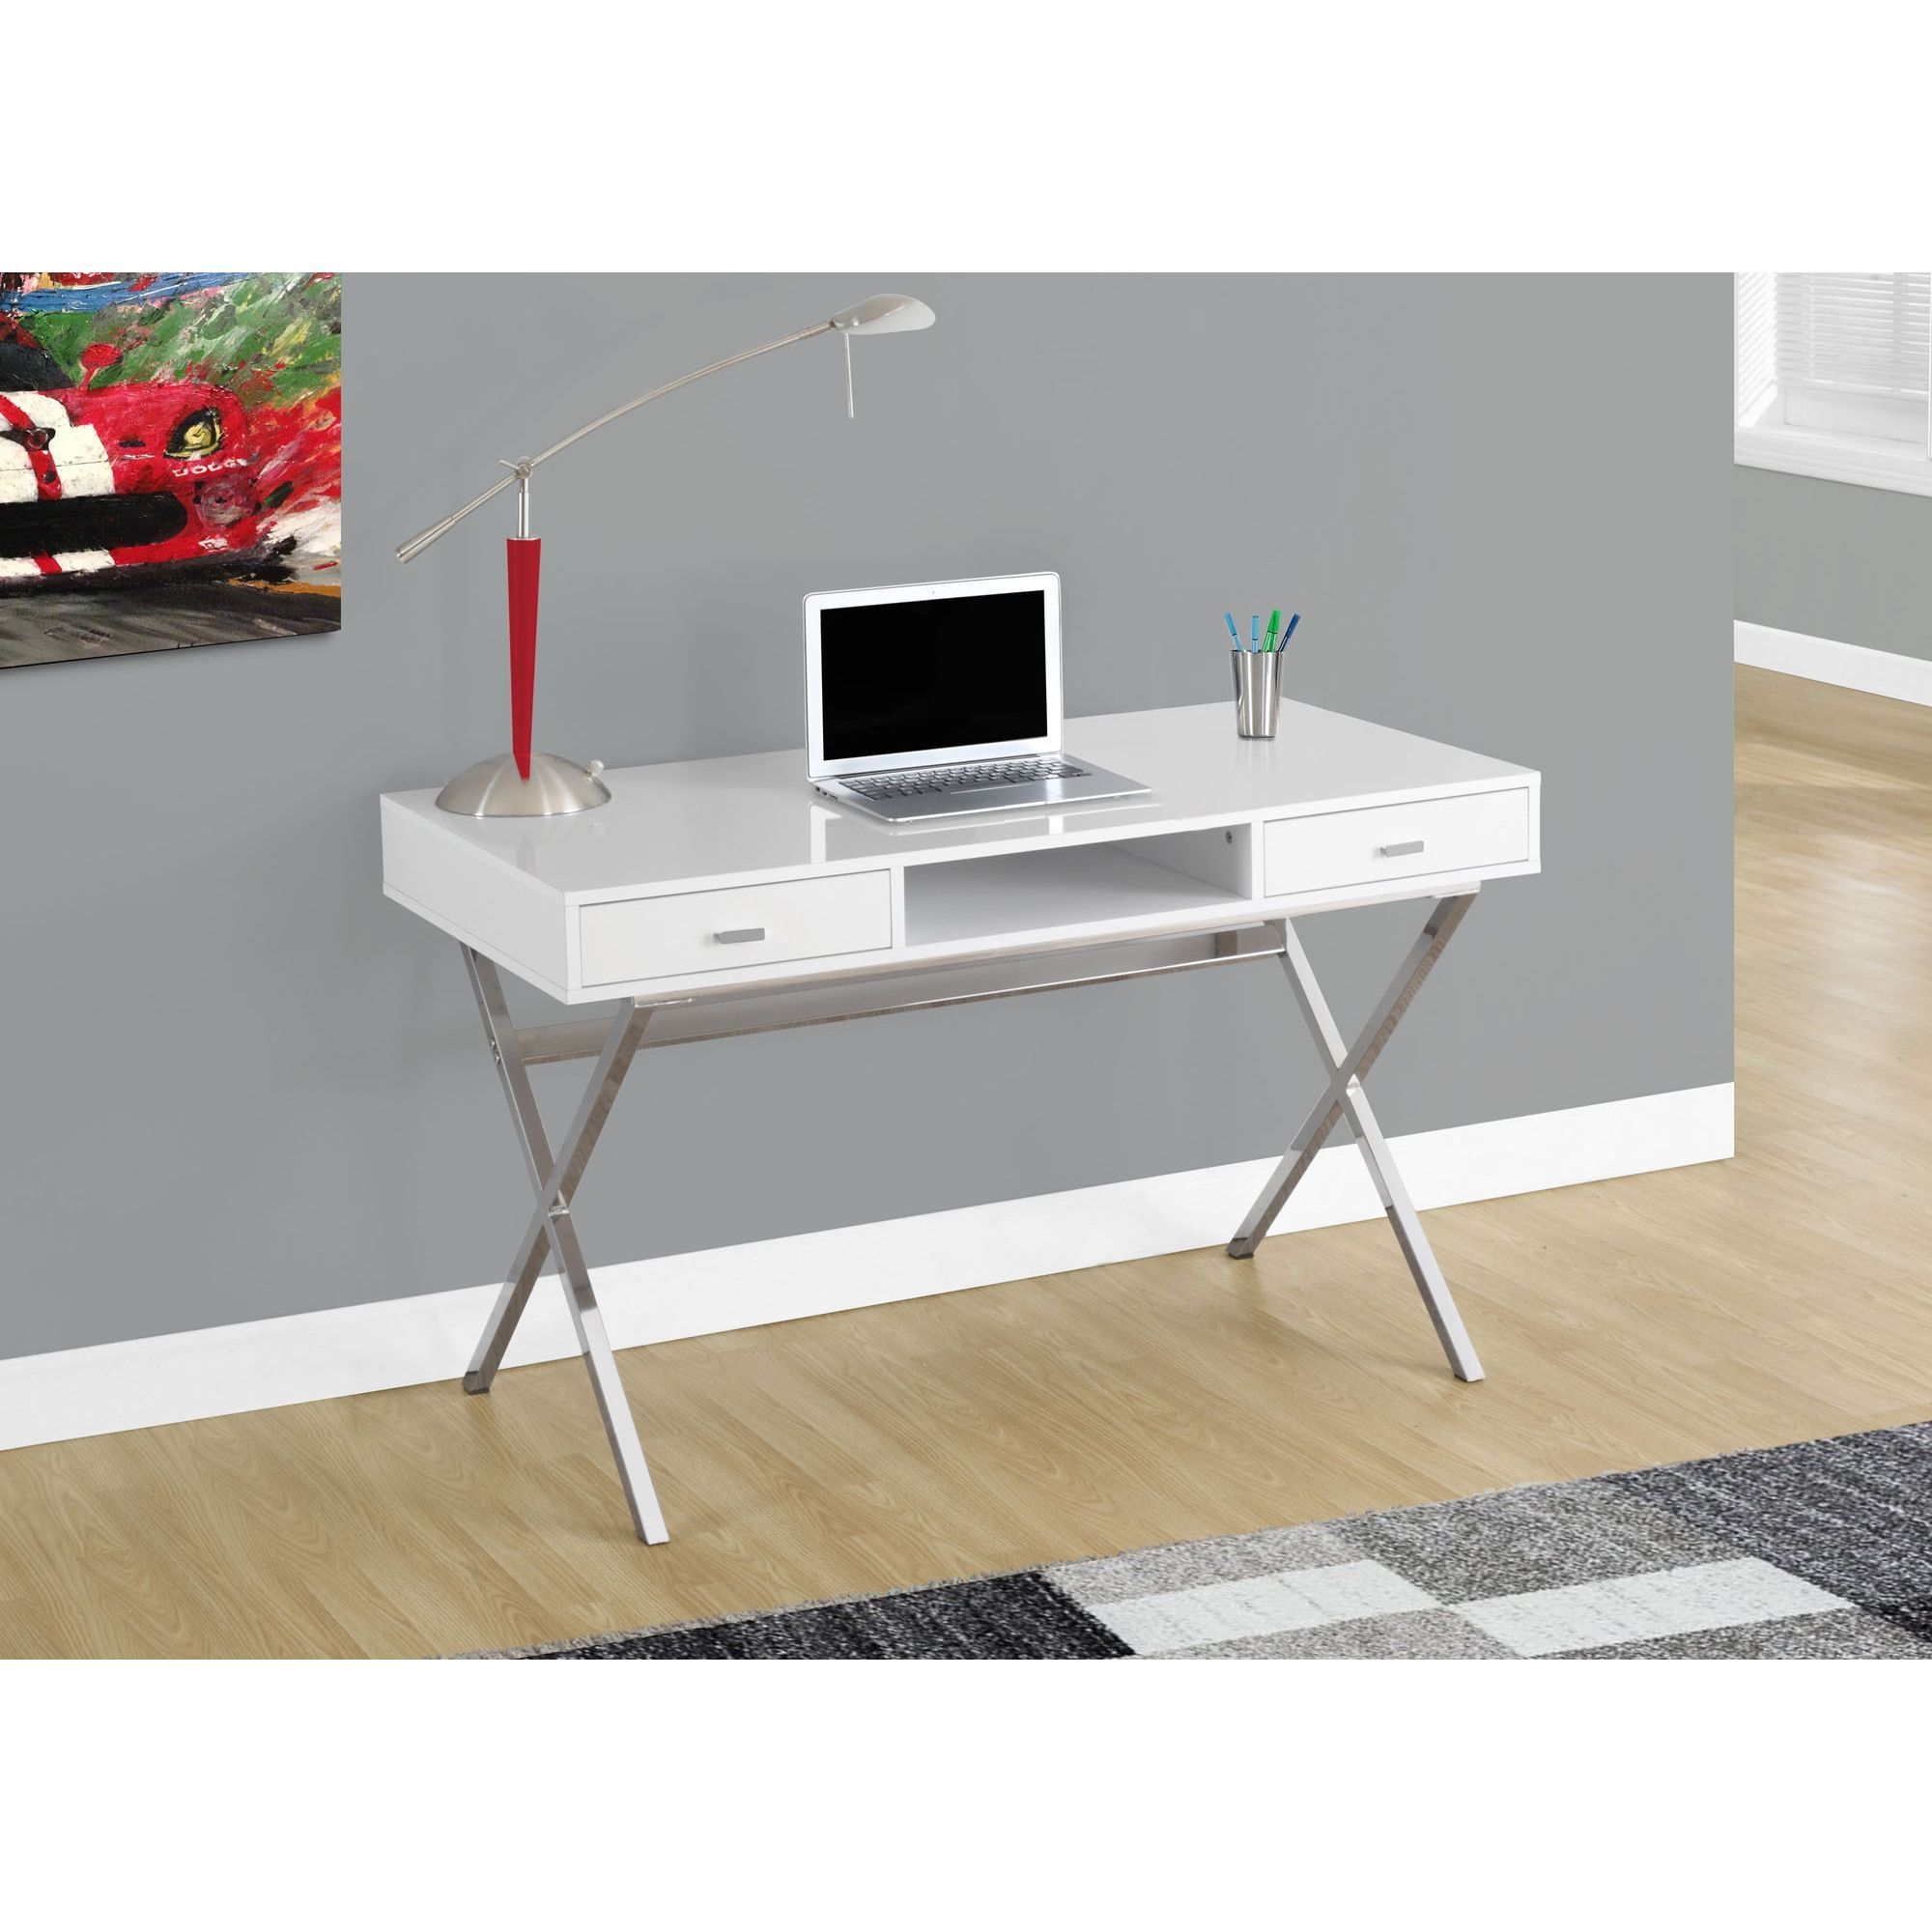 This Modern Computer Desk Is Compact In Size And Is Ideal For